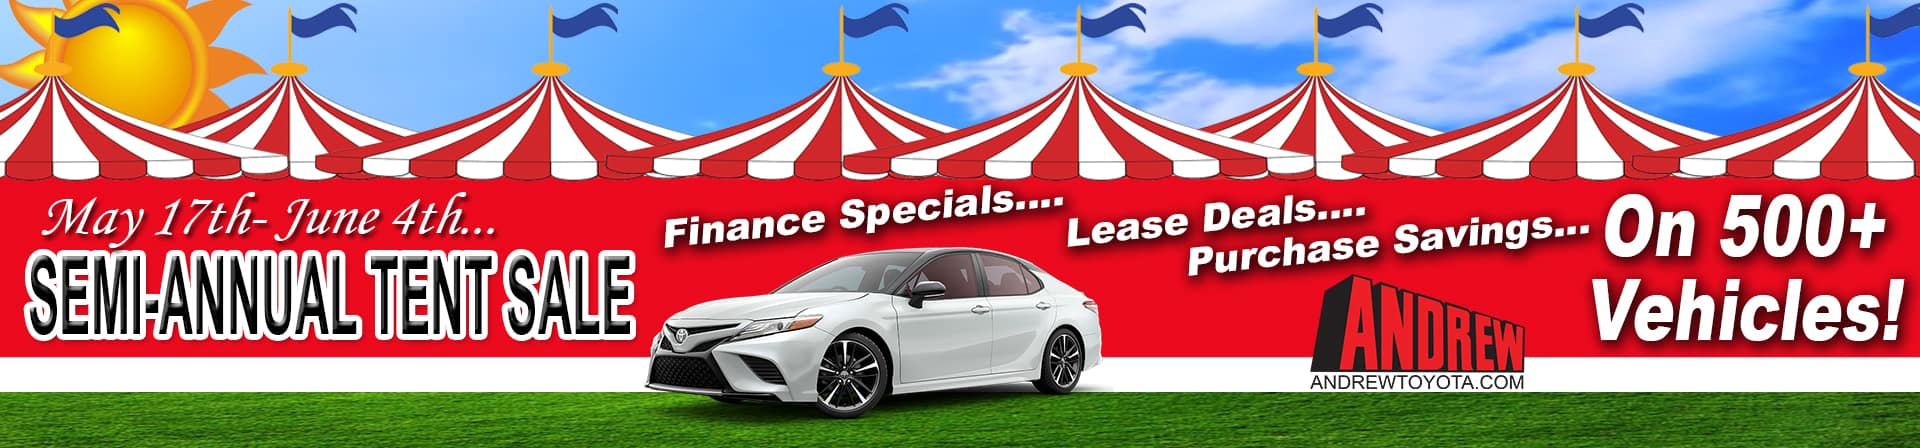 Promo Banner for tent sale at Andrew Toyota.